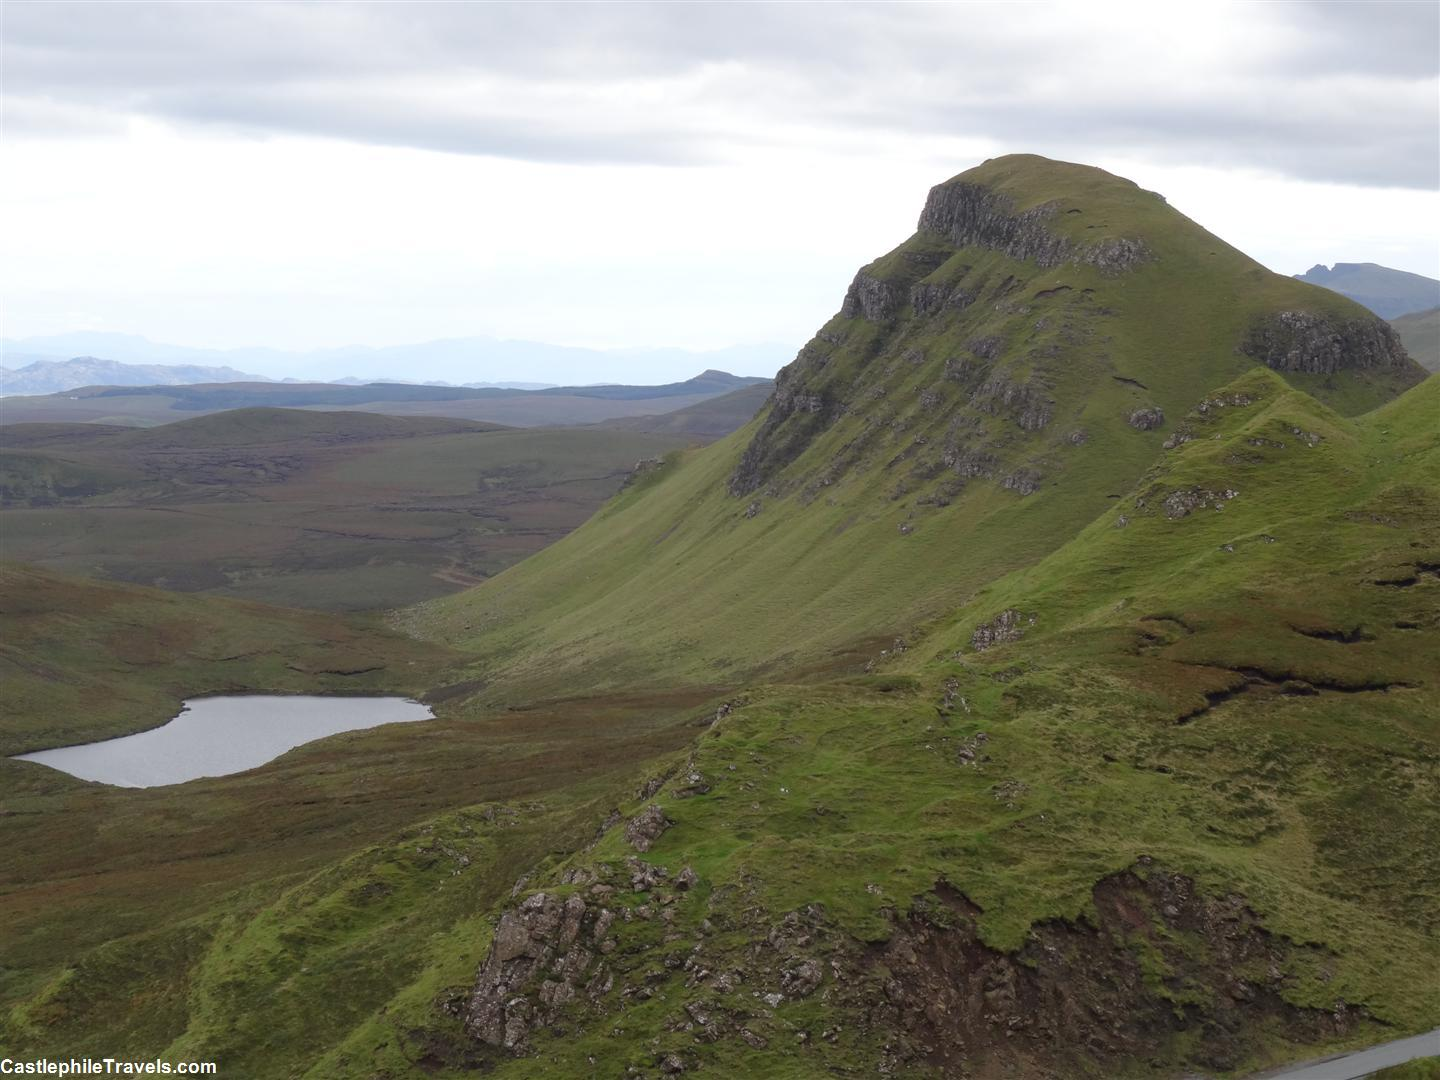 The Quiraing on the Isle of Skye